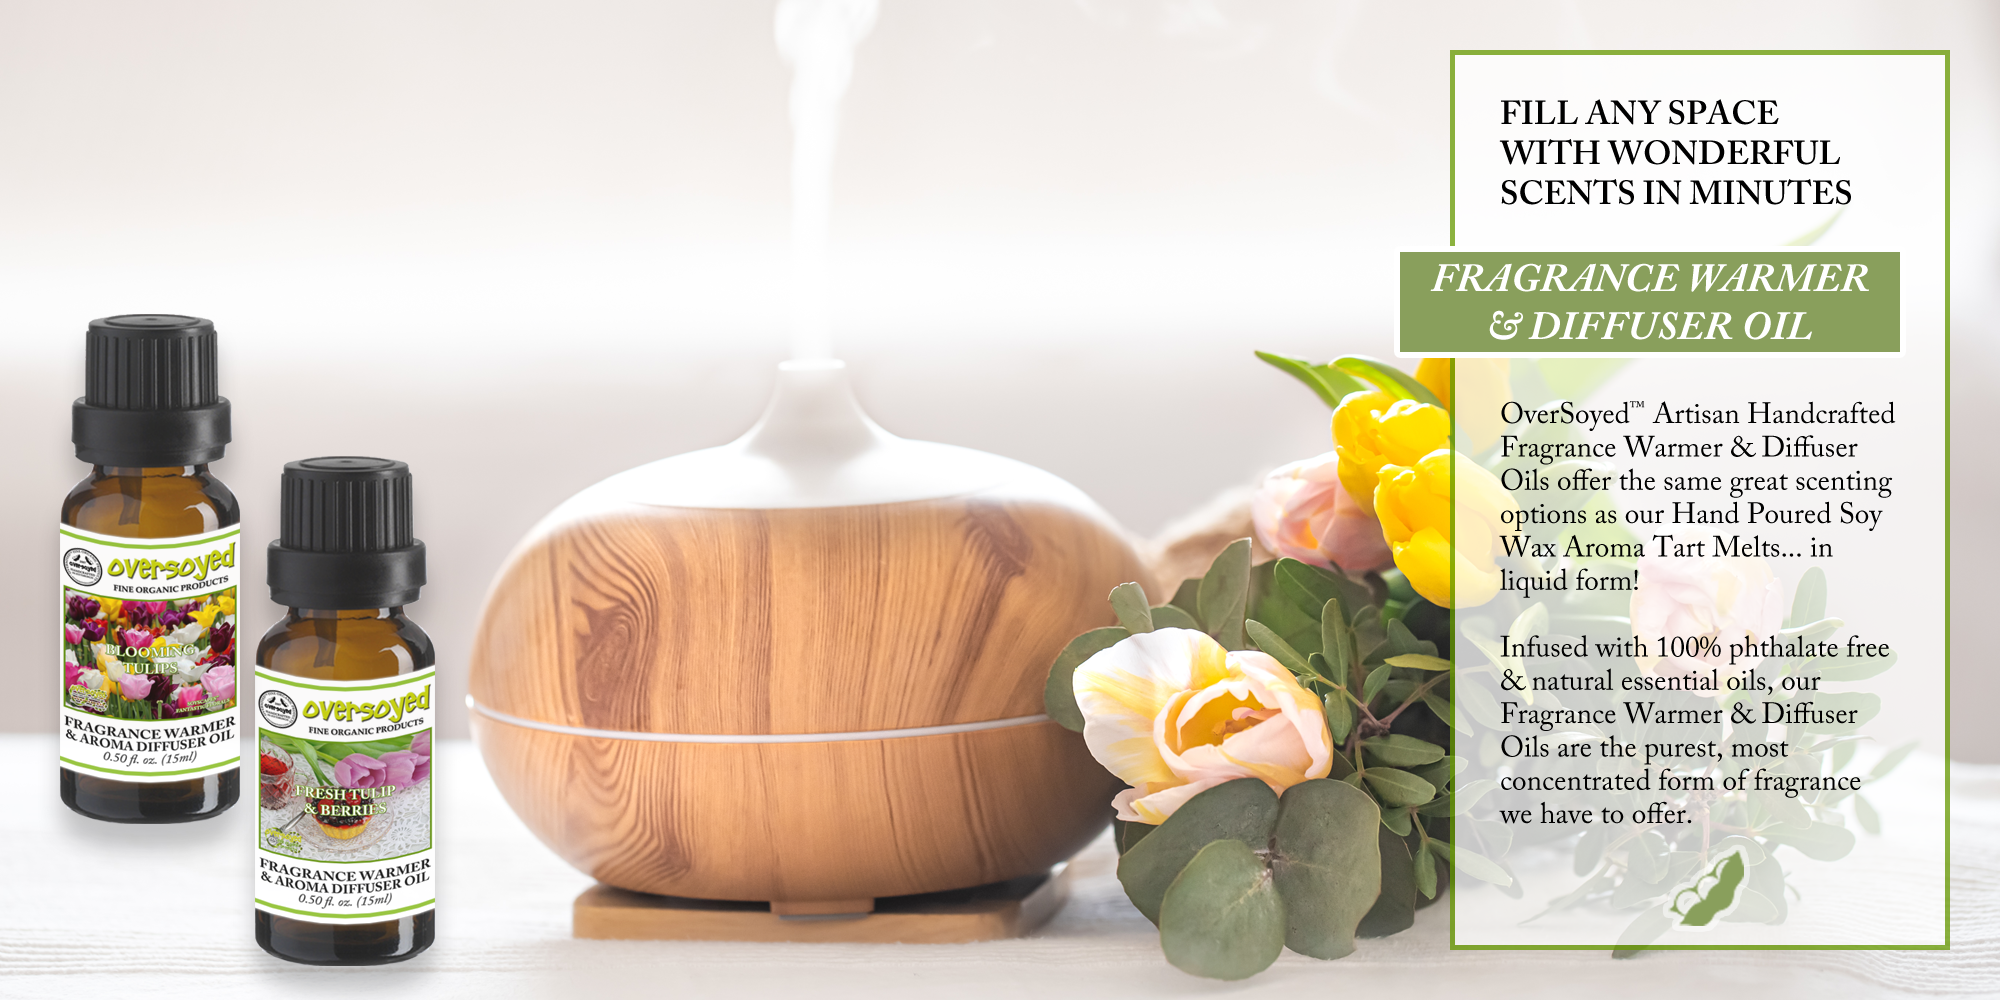 OverSoyed Fine Organic Products - Artisan Handcrafted Fragrance Warmer & Diffuser Oils